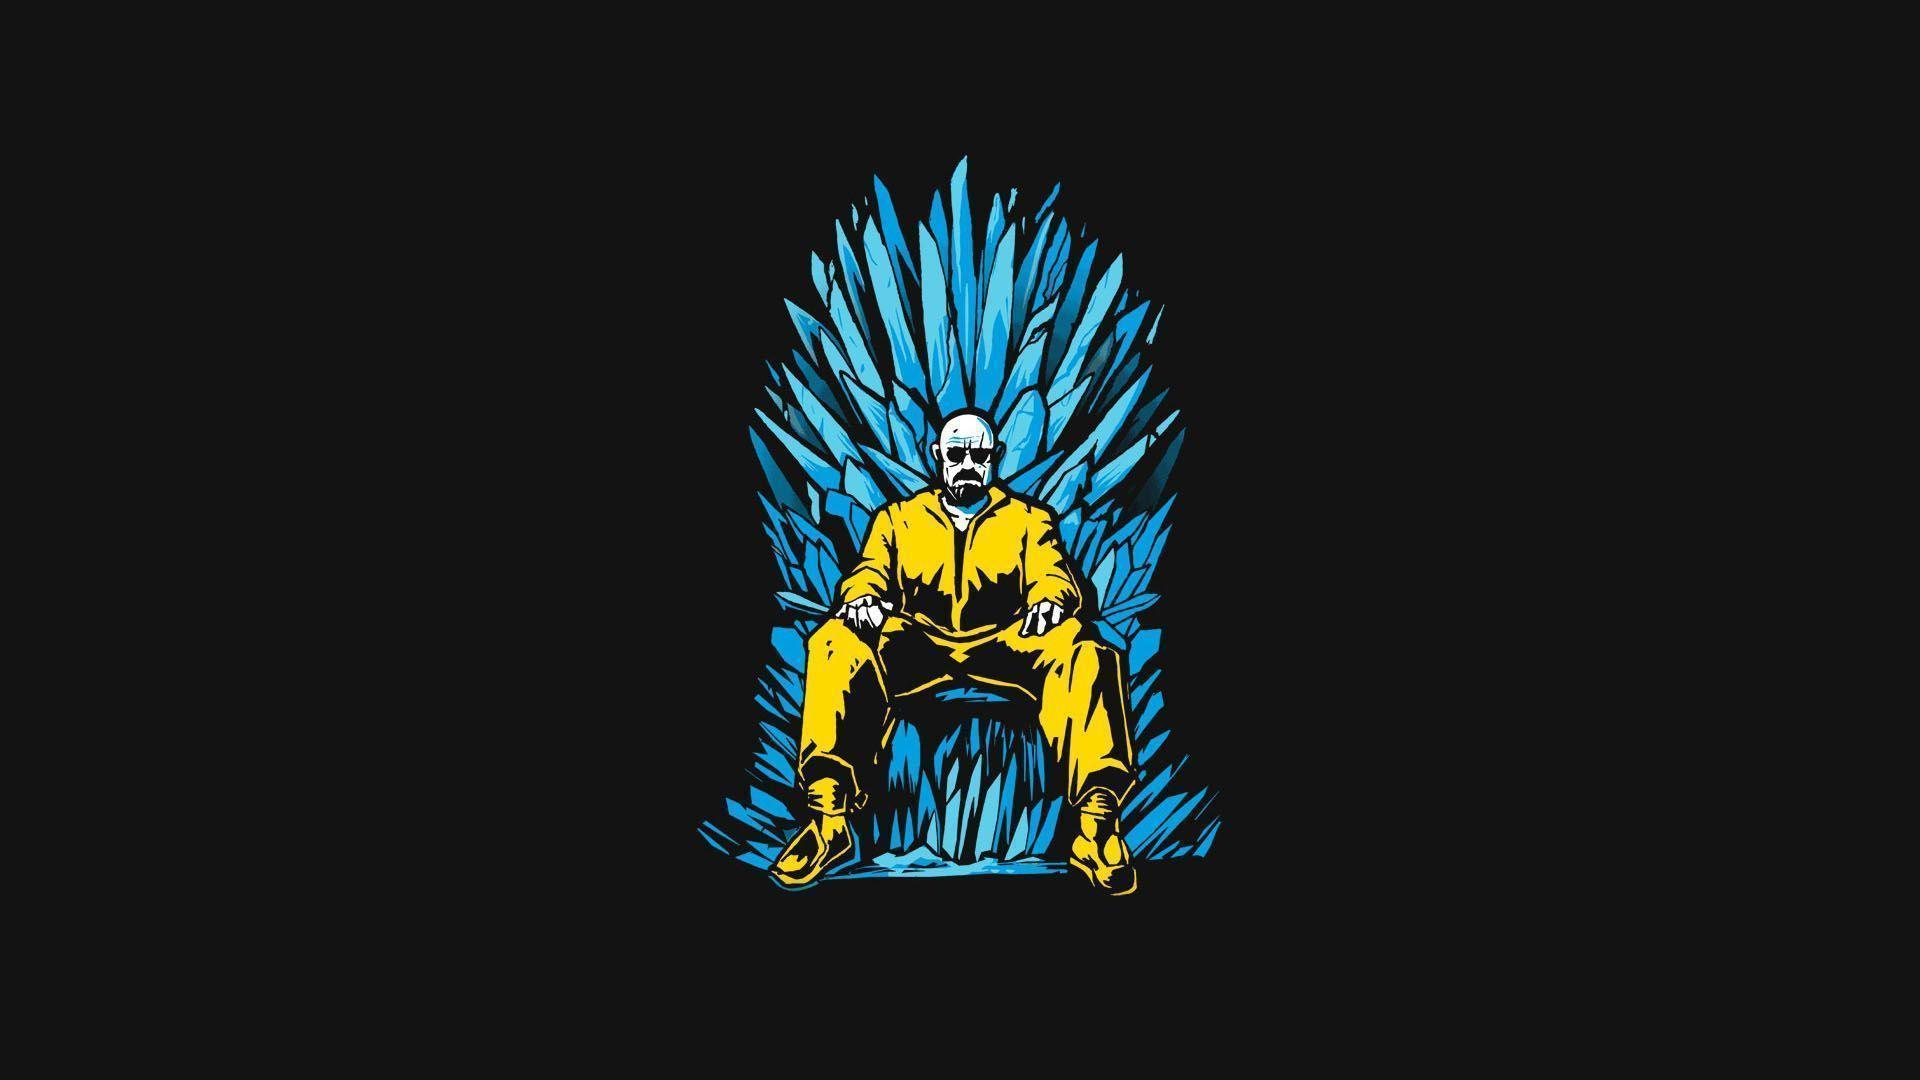 Breaking Bad Game Of Thrones Crossover HD Wallpaper 1920x1080